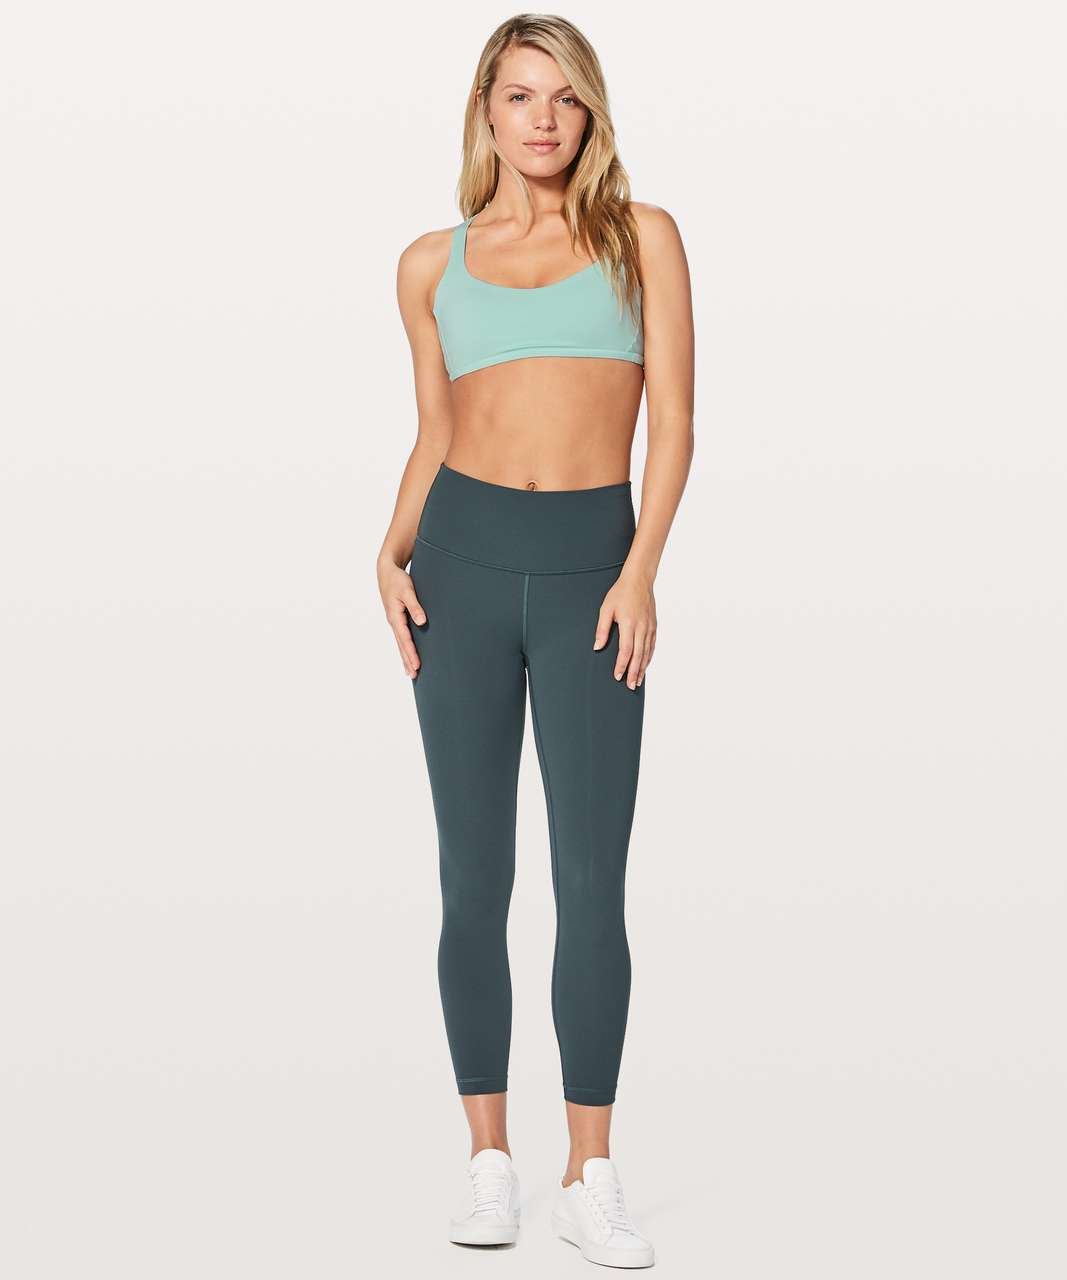 89bf4a77d6 Lululemon Free To Be Zen Bra - Tonic Sea - lulu fanatics